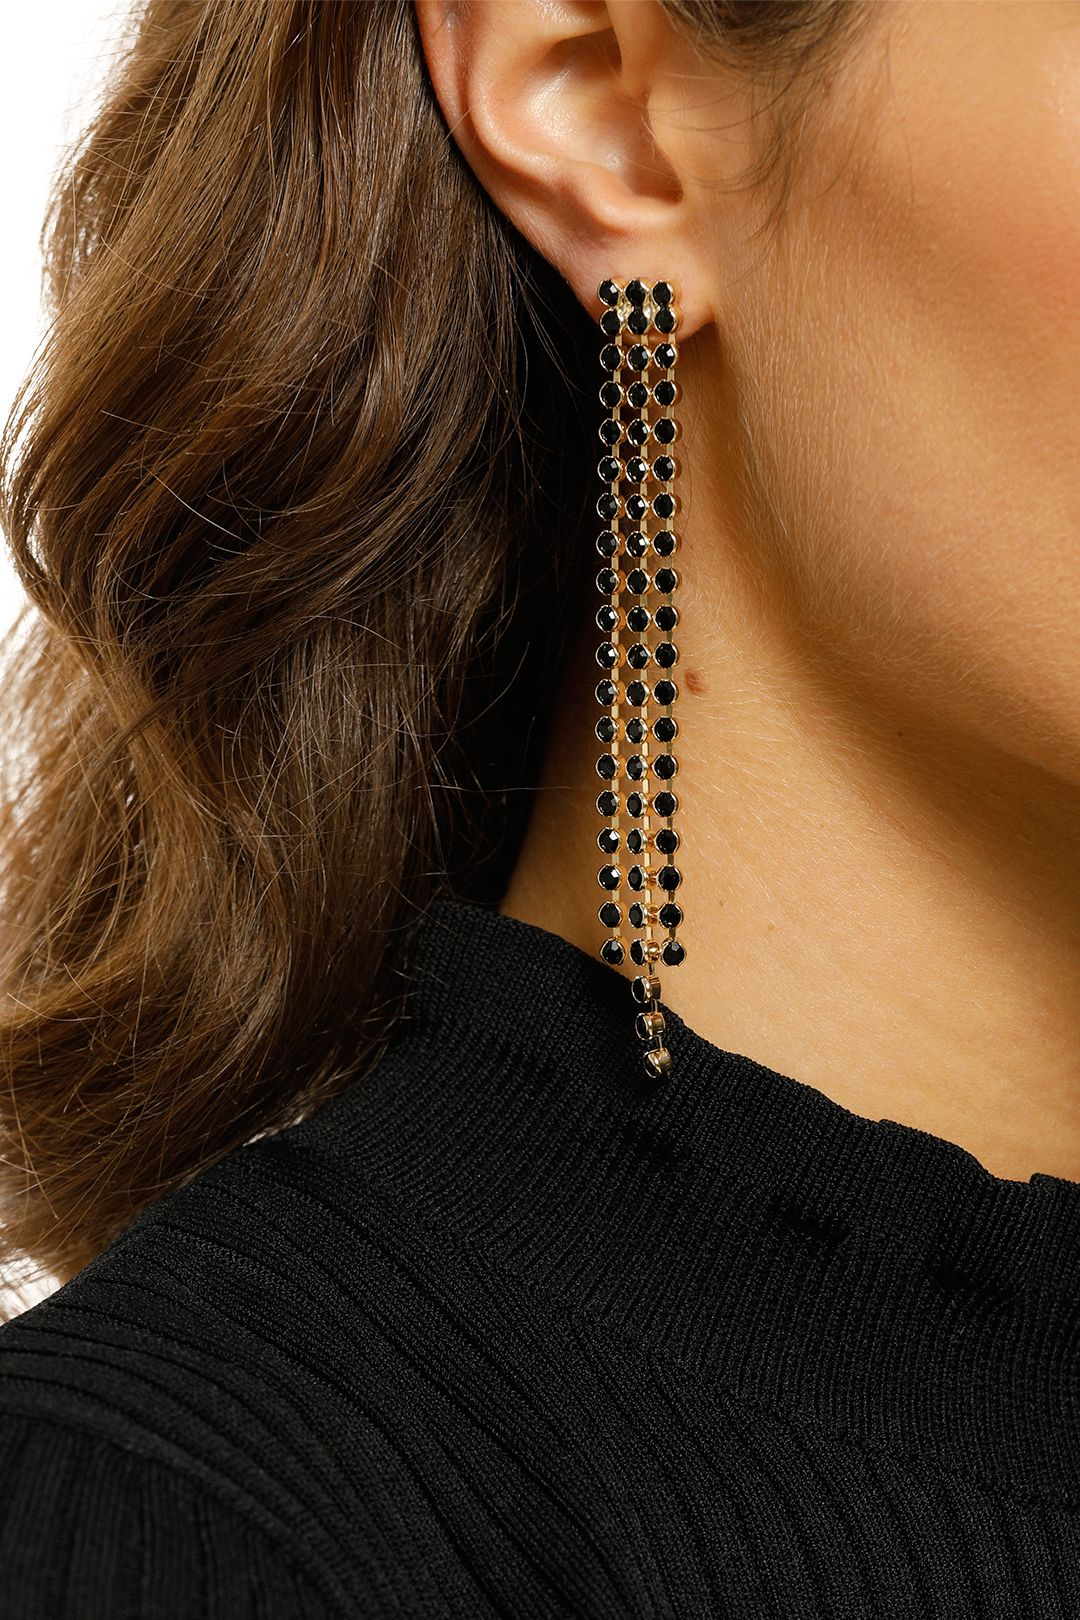 Adorne-Diamante-Chain-Drop-Earrings-Black-and-Gold-Product